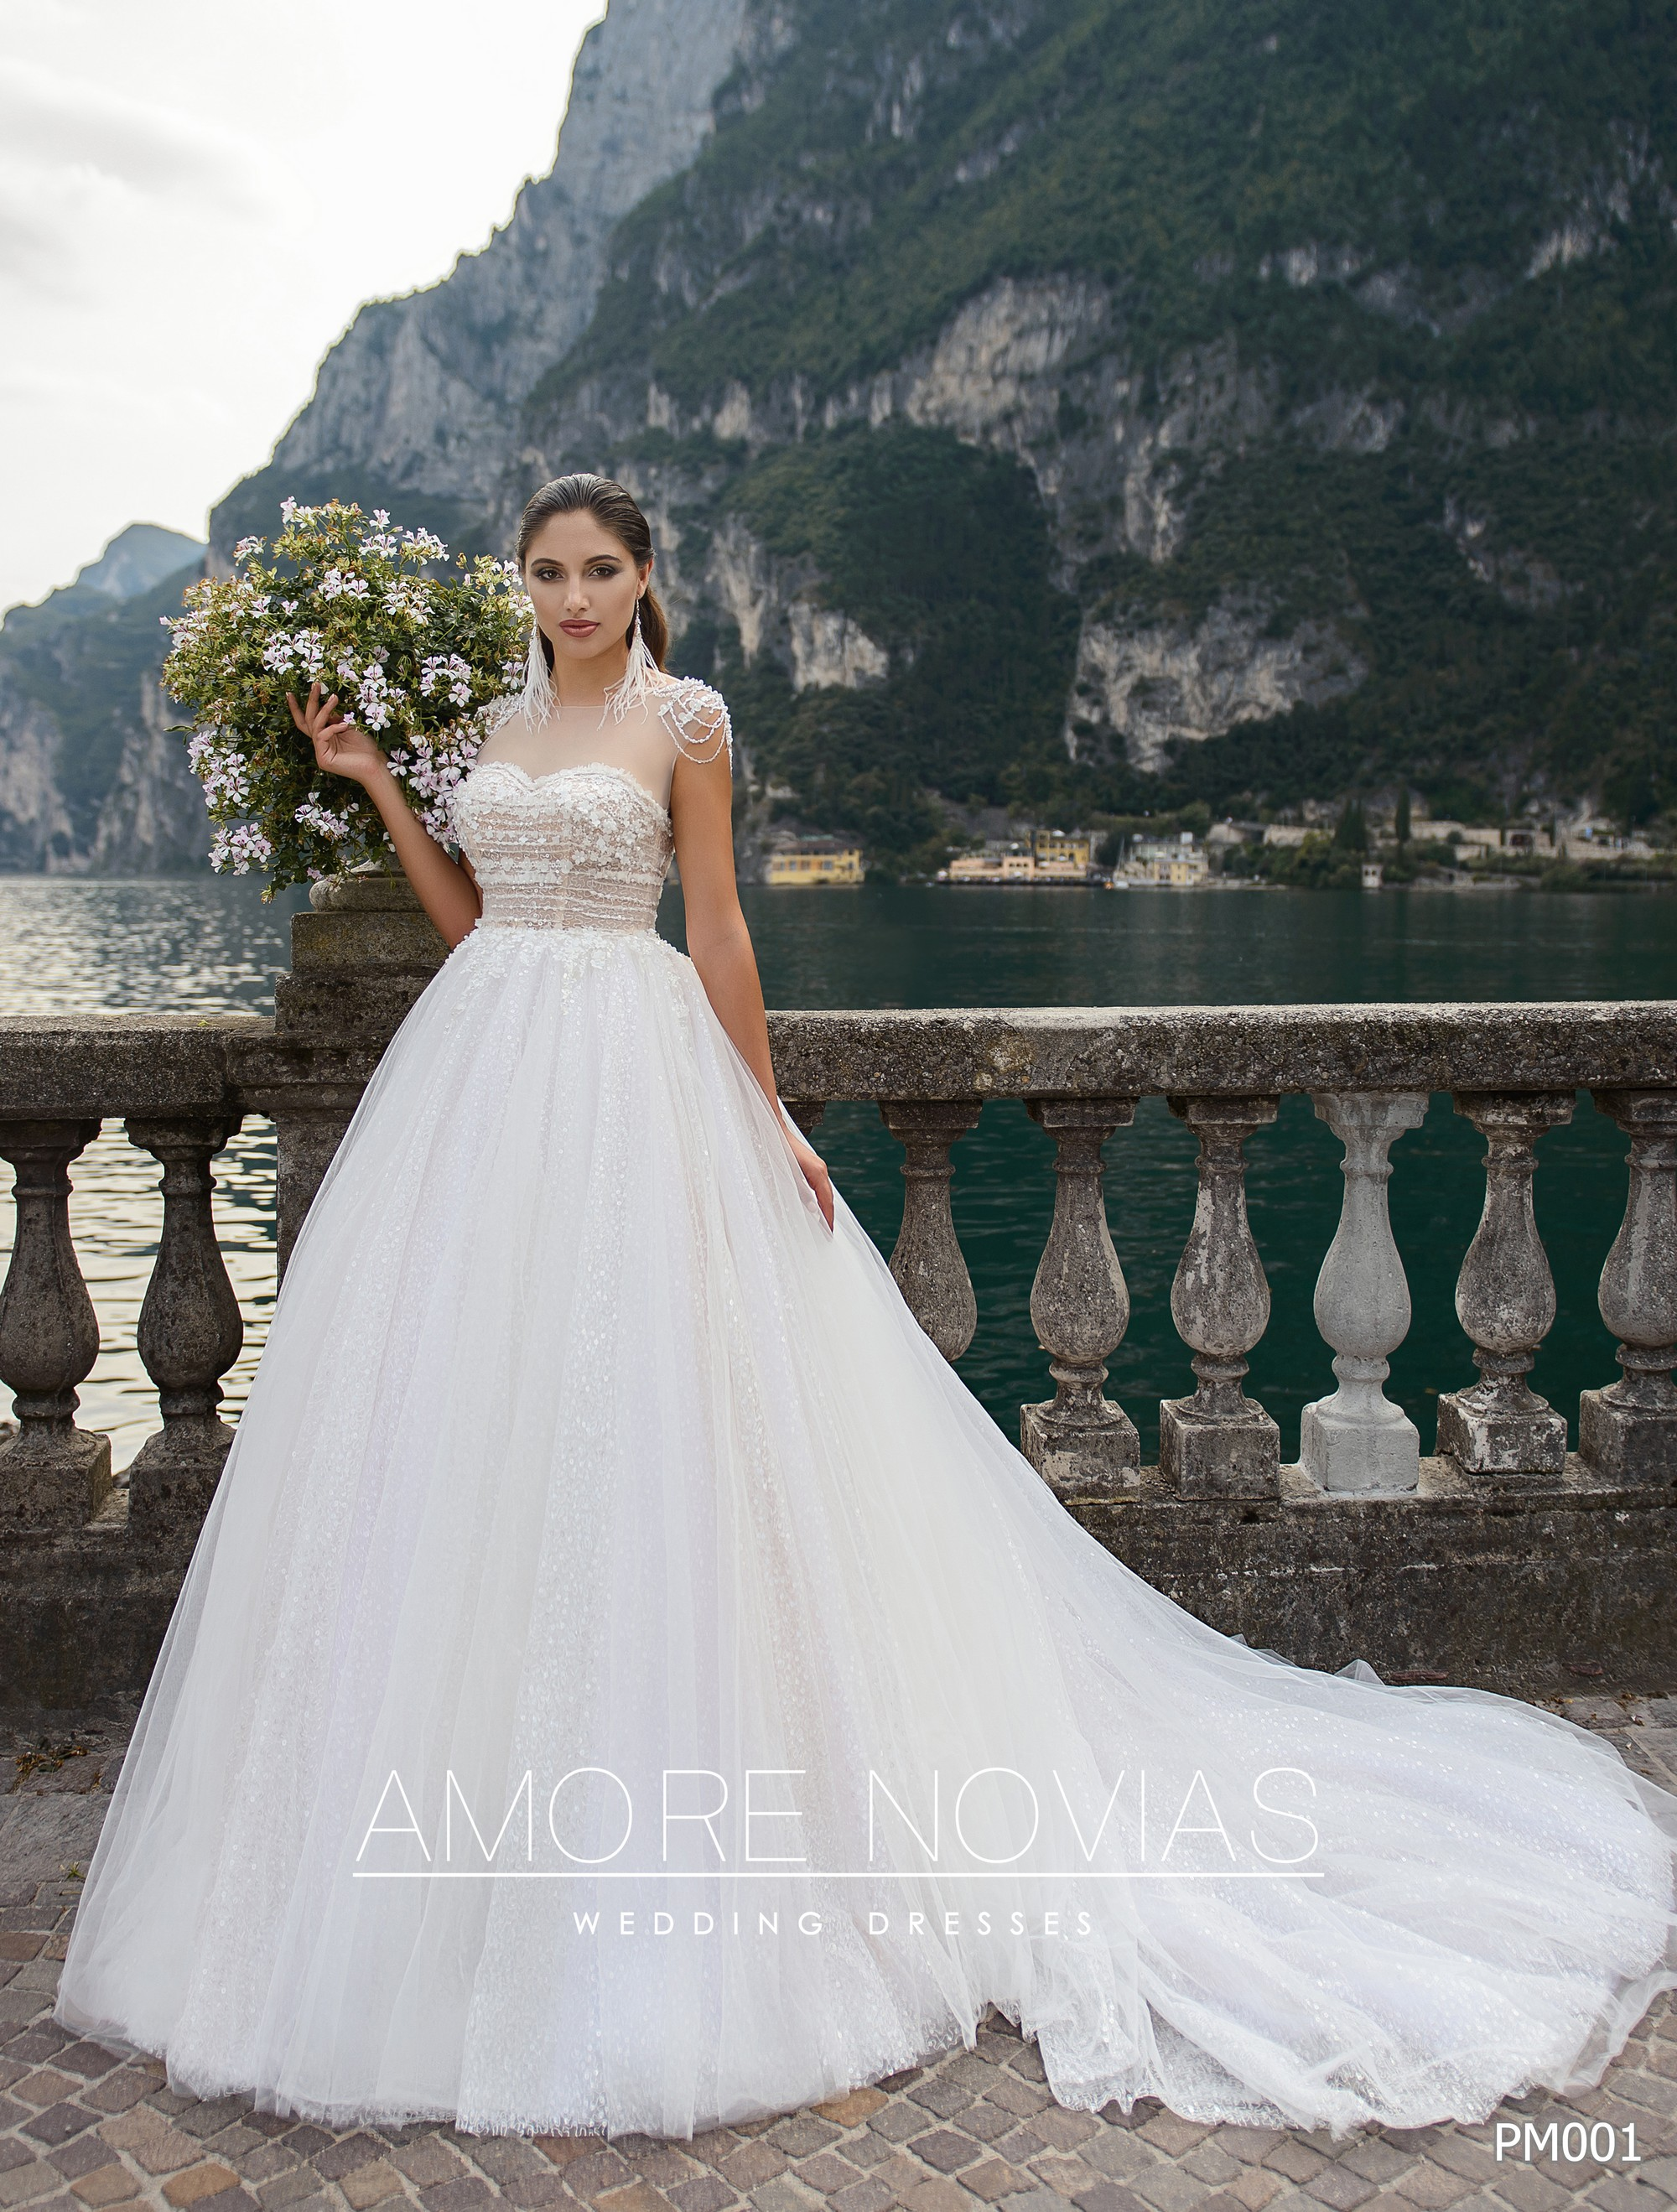 http://amore-novias.com/images/stories/virtuemart/product/pm001-(5)1-site.jpg